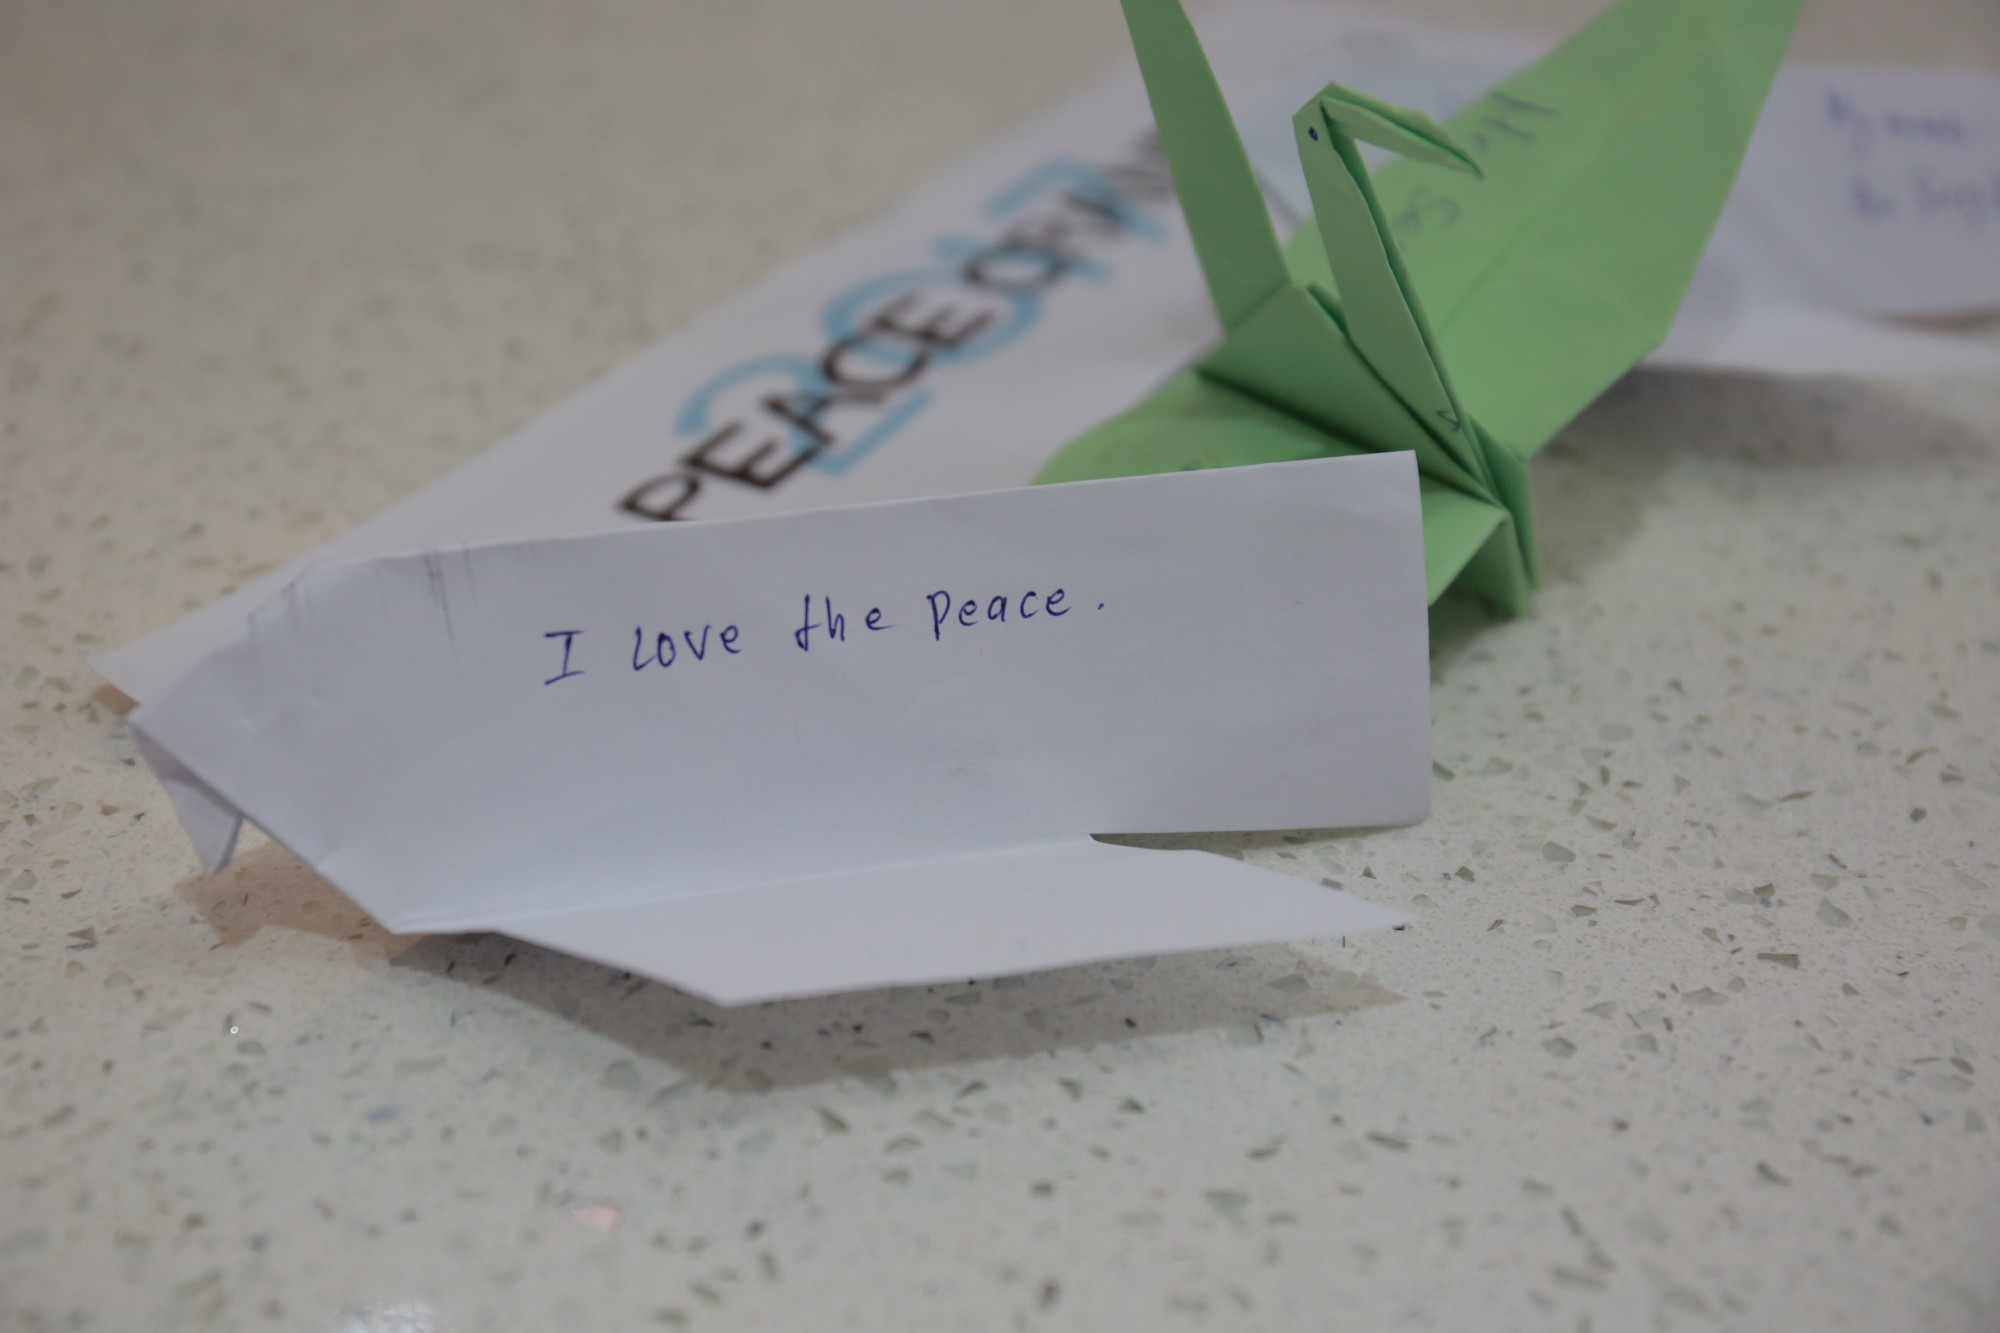 What does peace mean to you the peace crane project medium i love the peace crane from a student in siem reap cambodia jeuxipadfo Choice Image